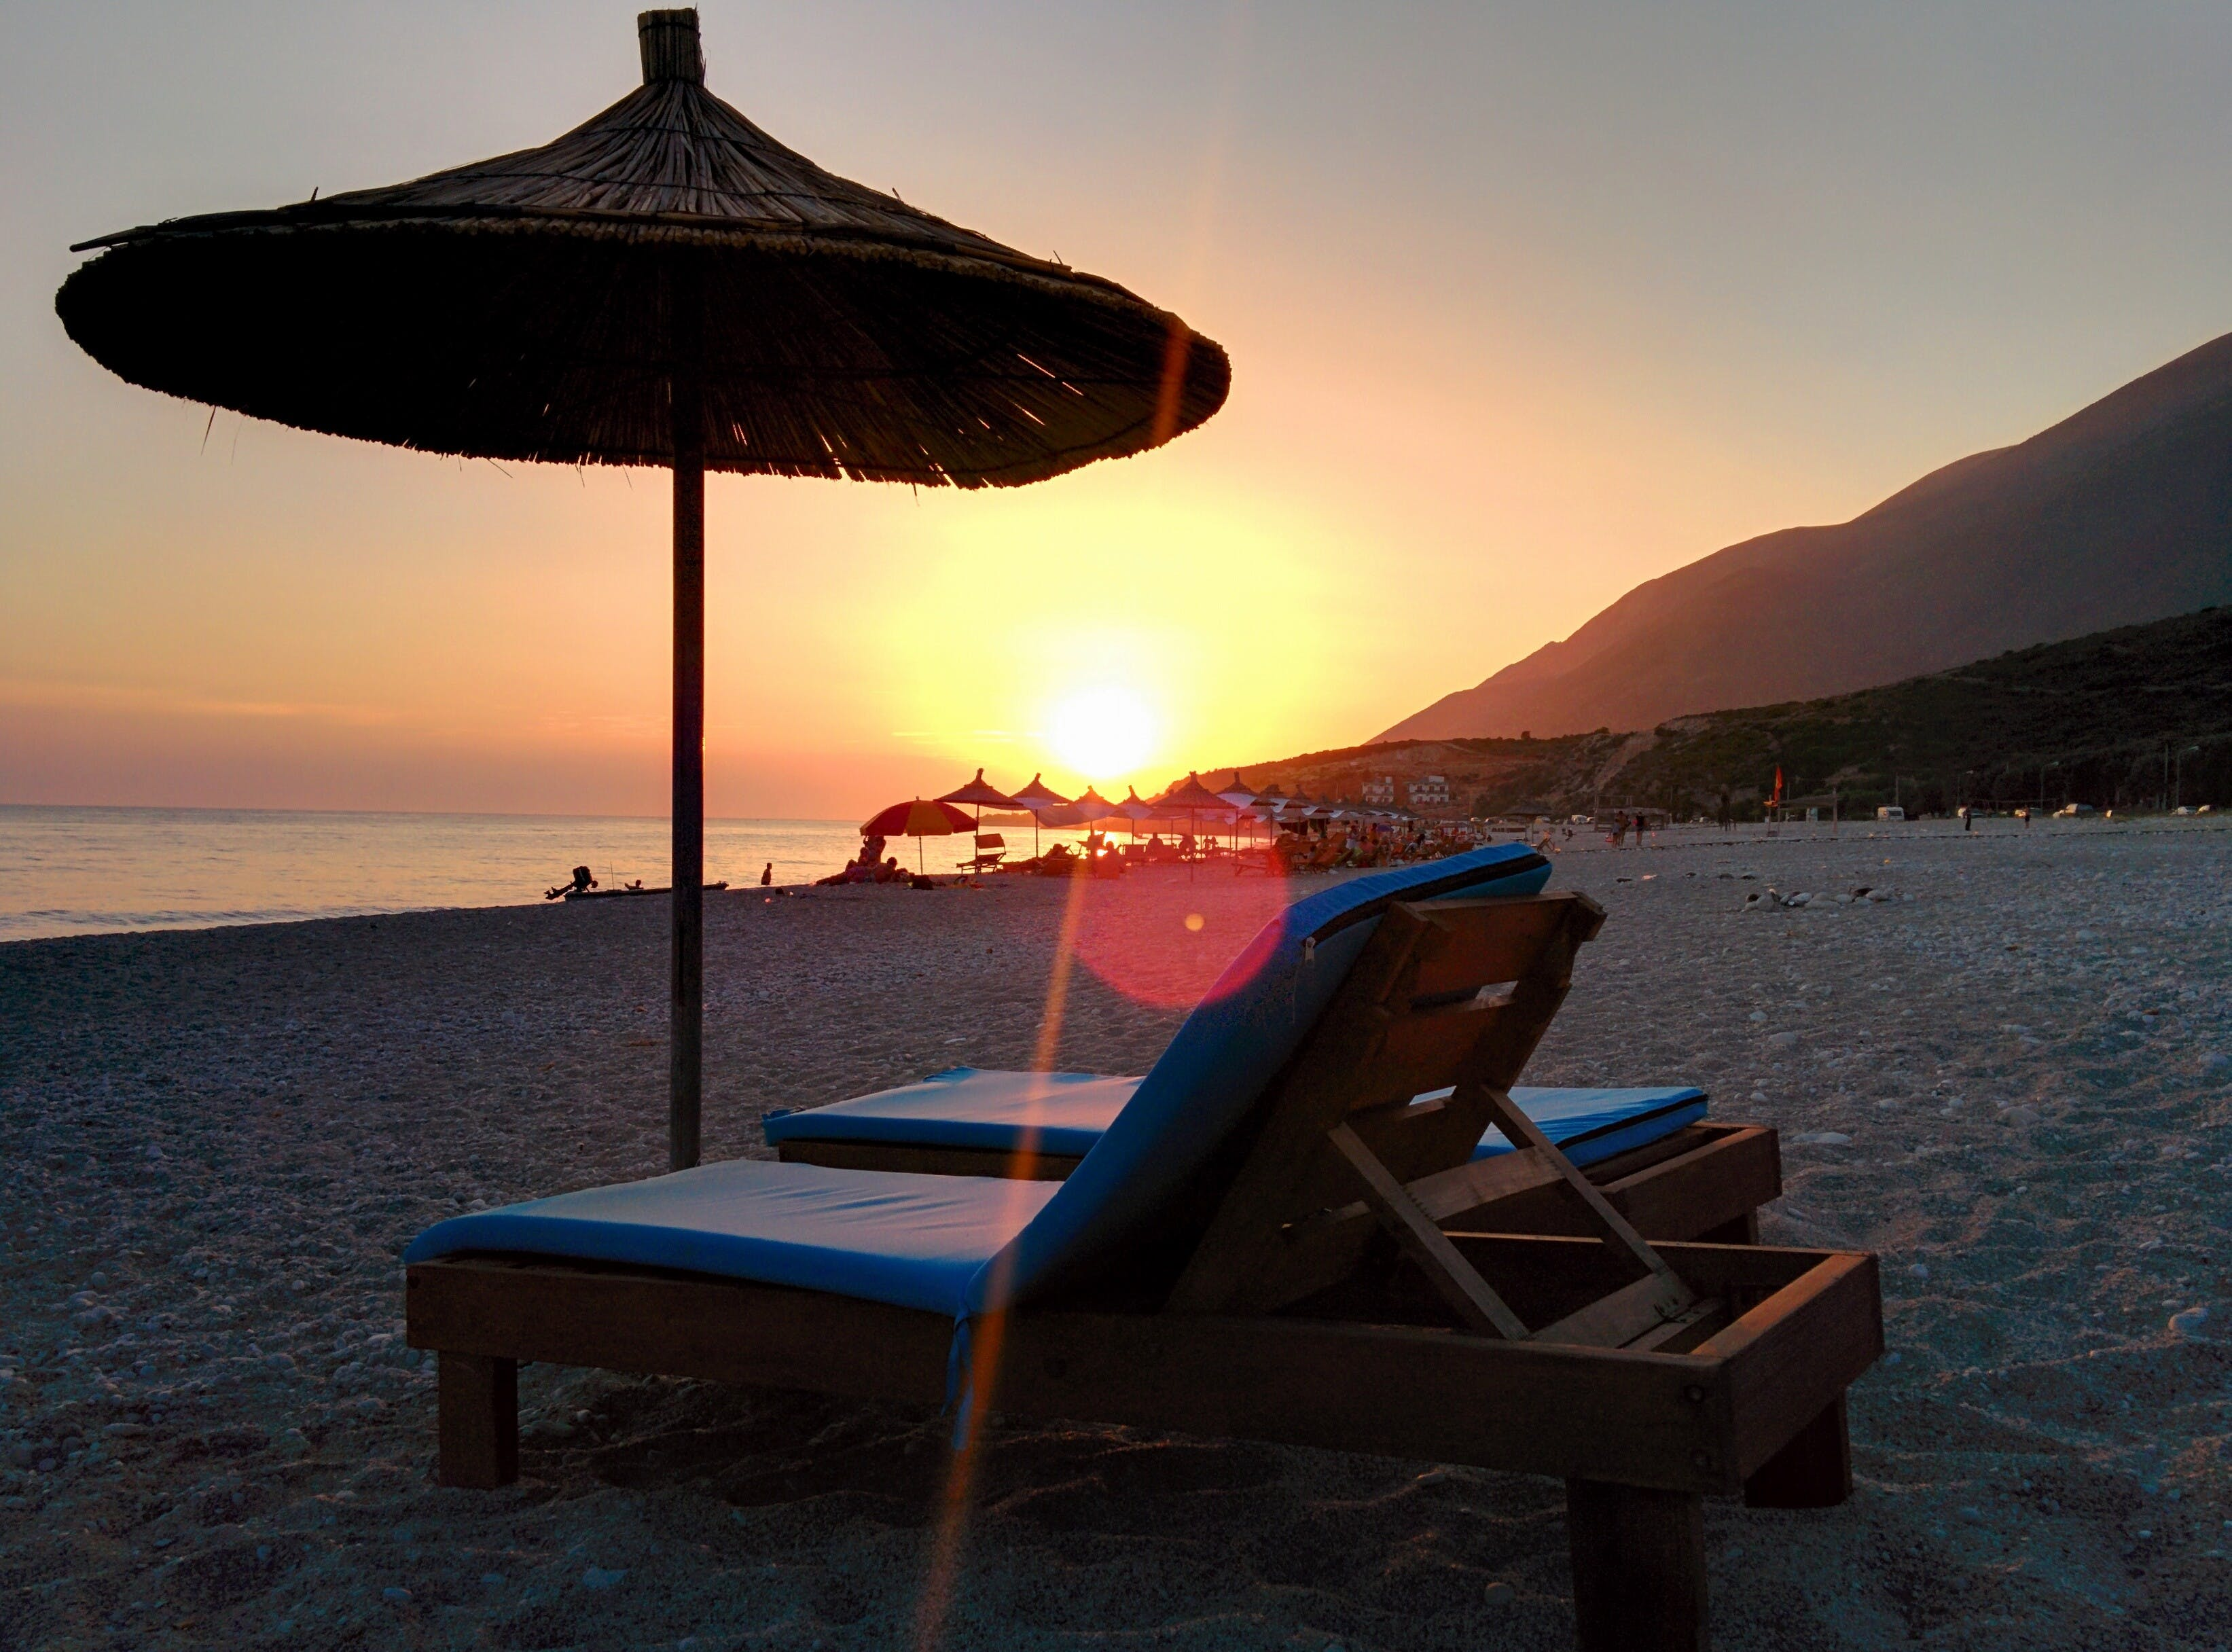 Brown Wooden Lounger on Seashore during Day Time